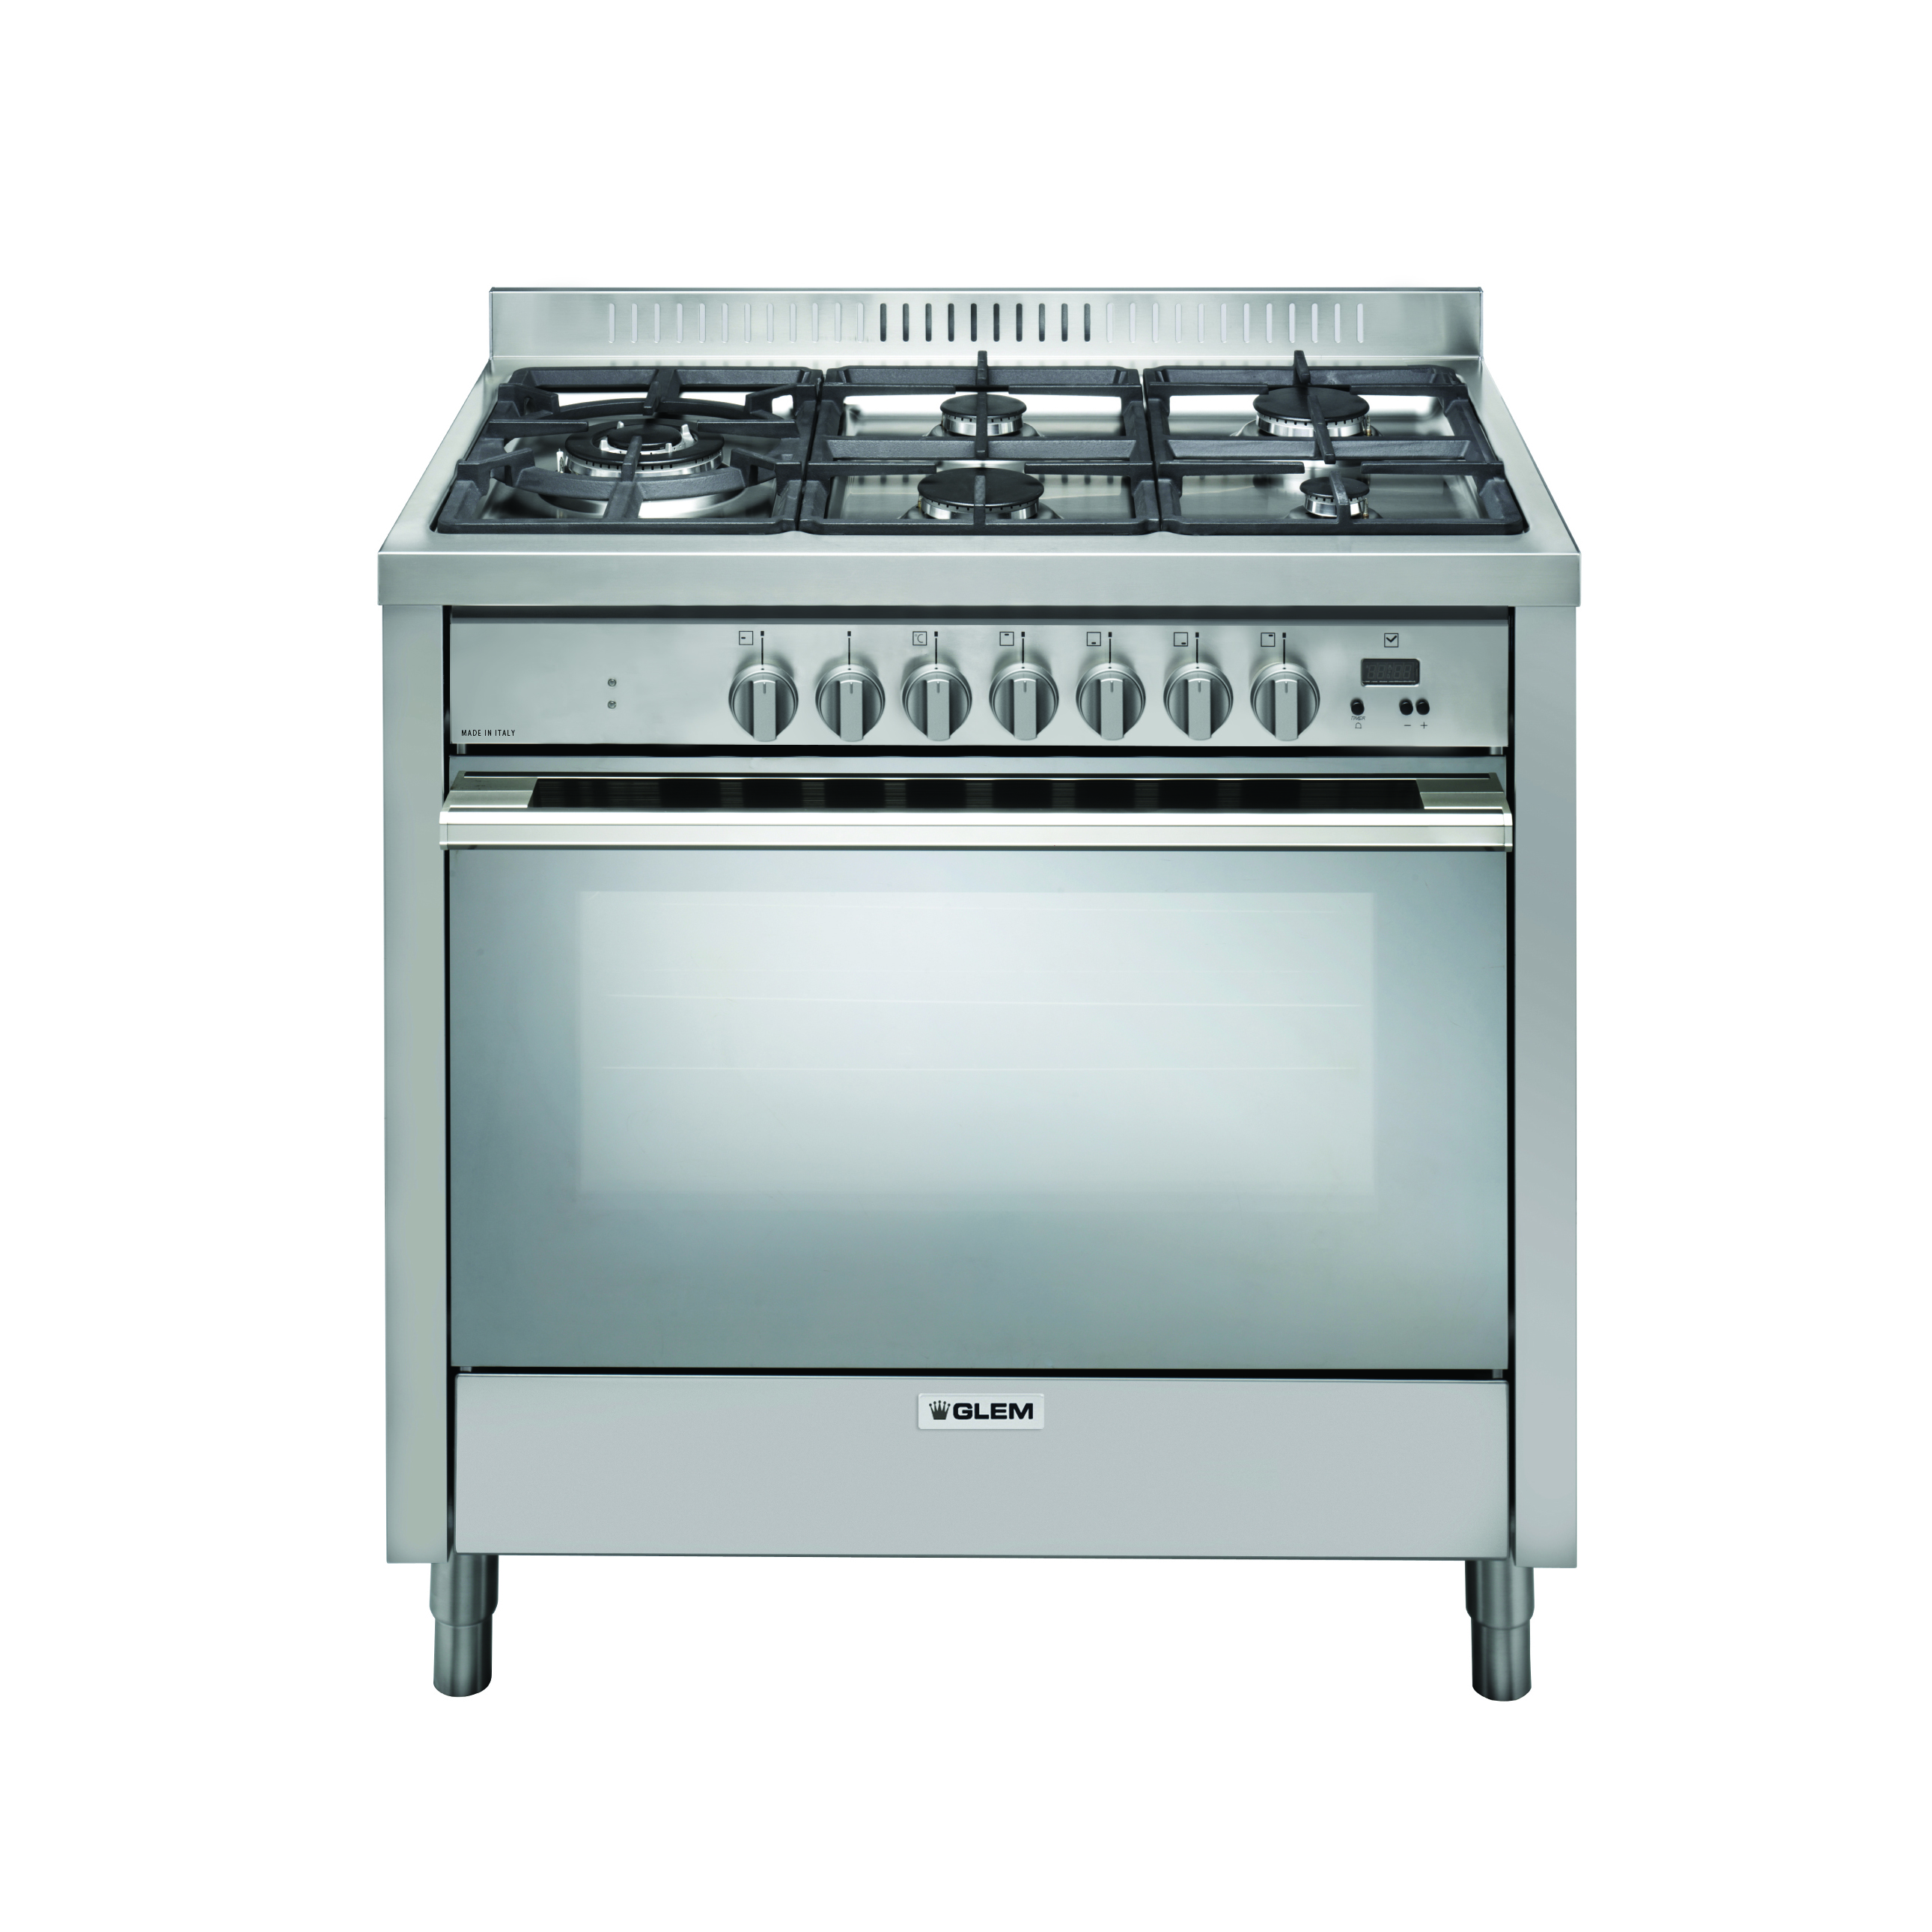 IT965PROEI2 Multifunction electric oven with a wok friendly 5 ...